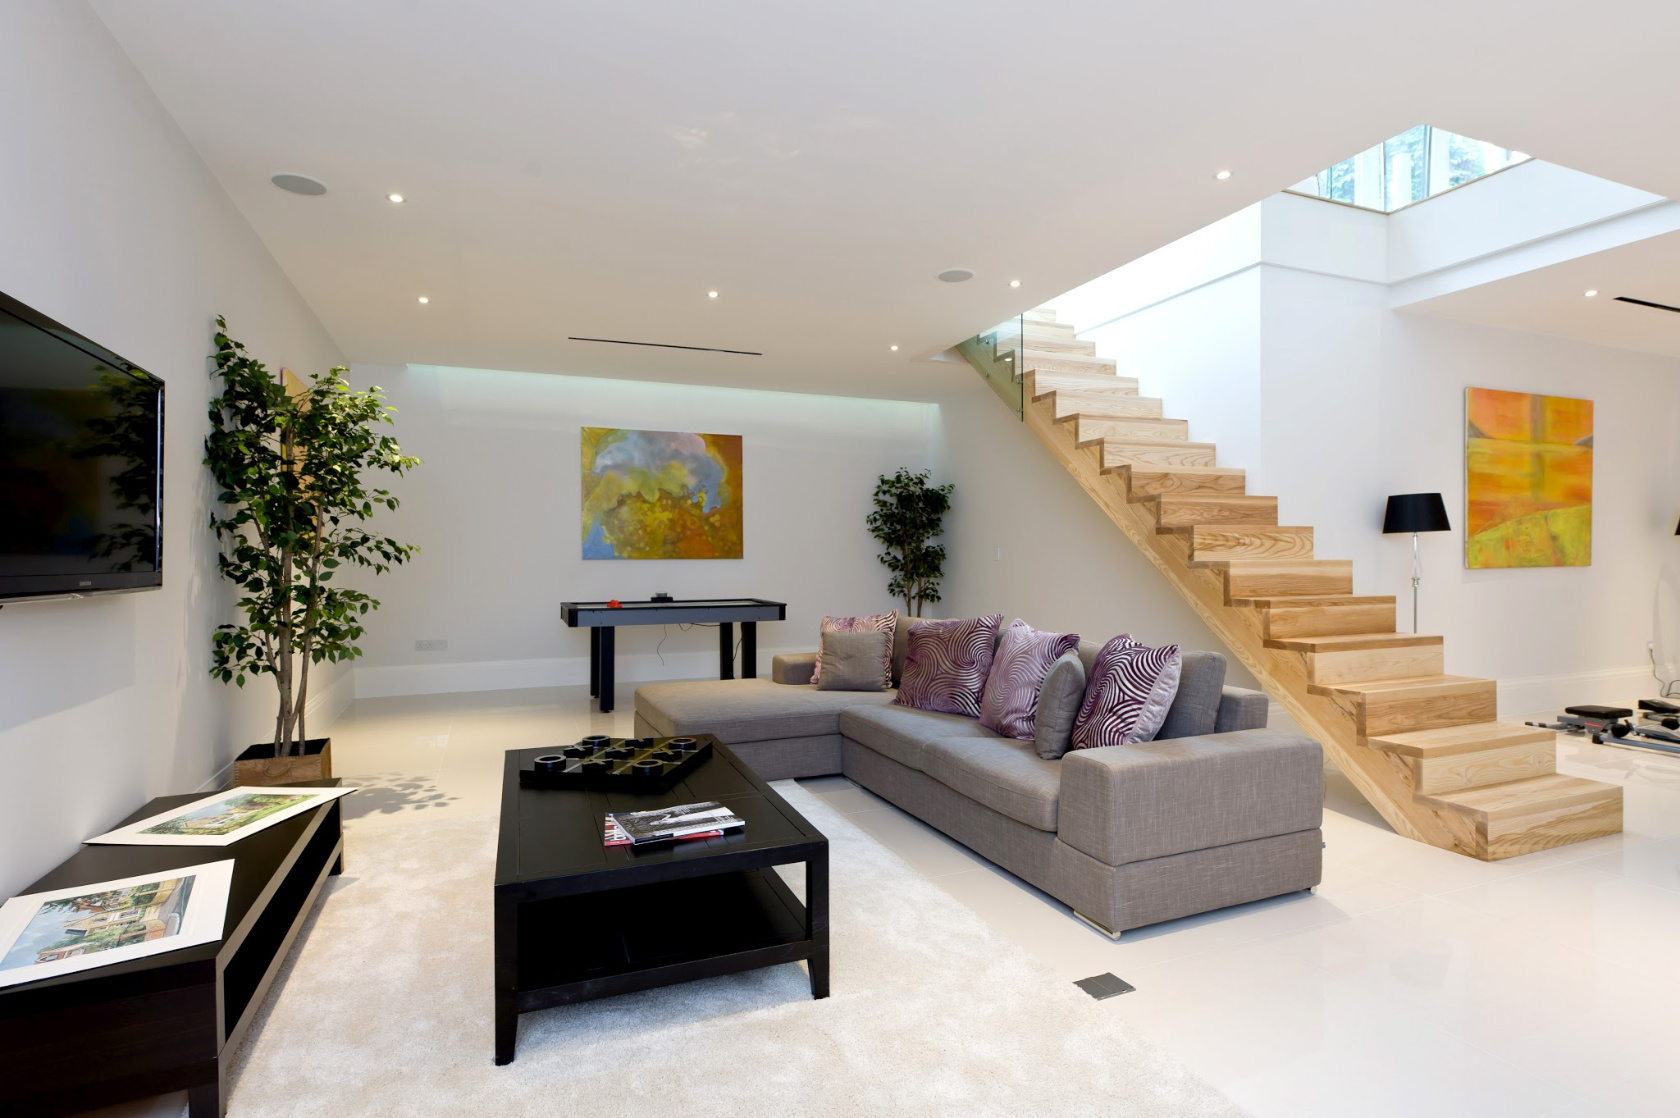 A basement family room with a TV lounge, gym area and table-football under a new-build house in SW20